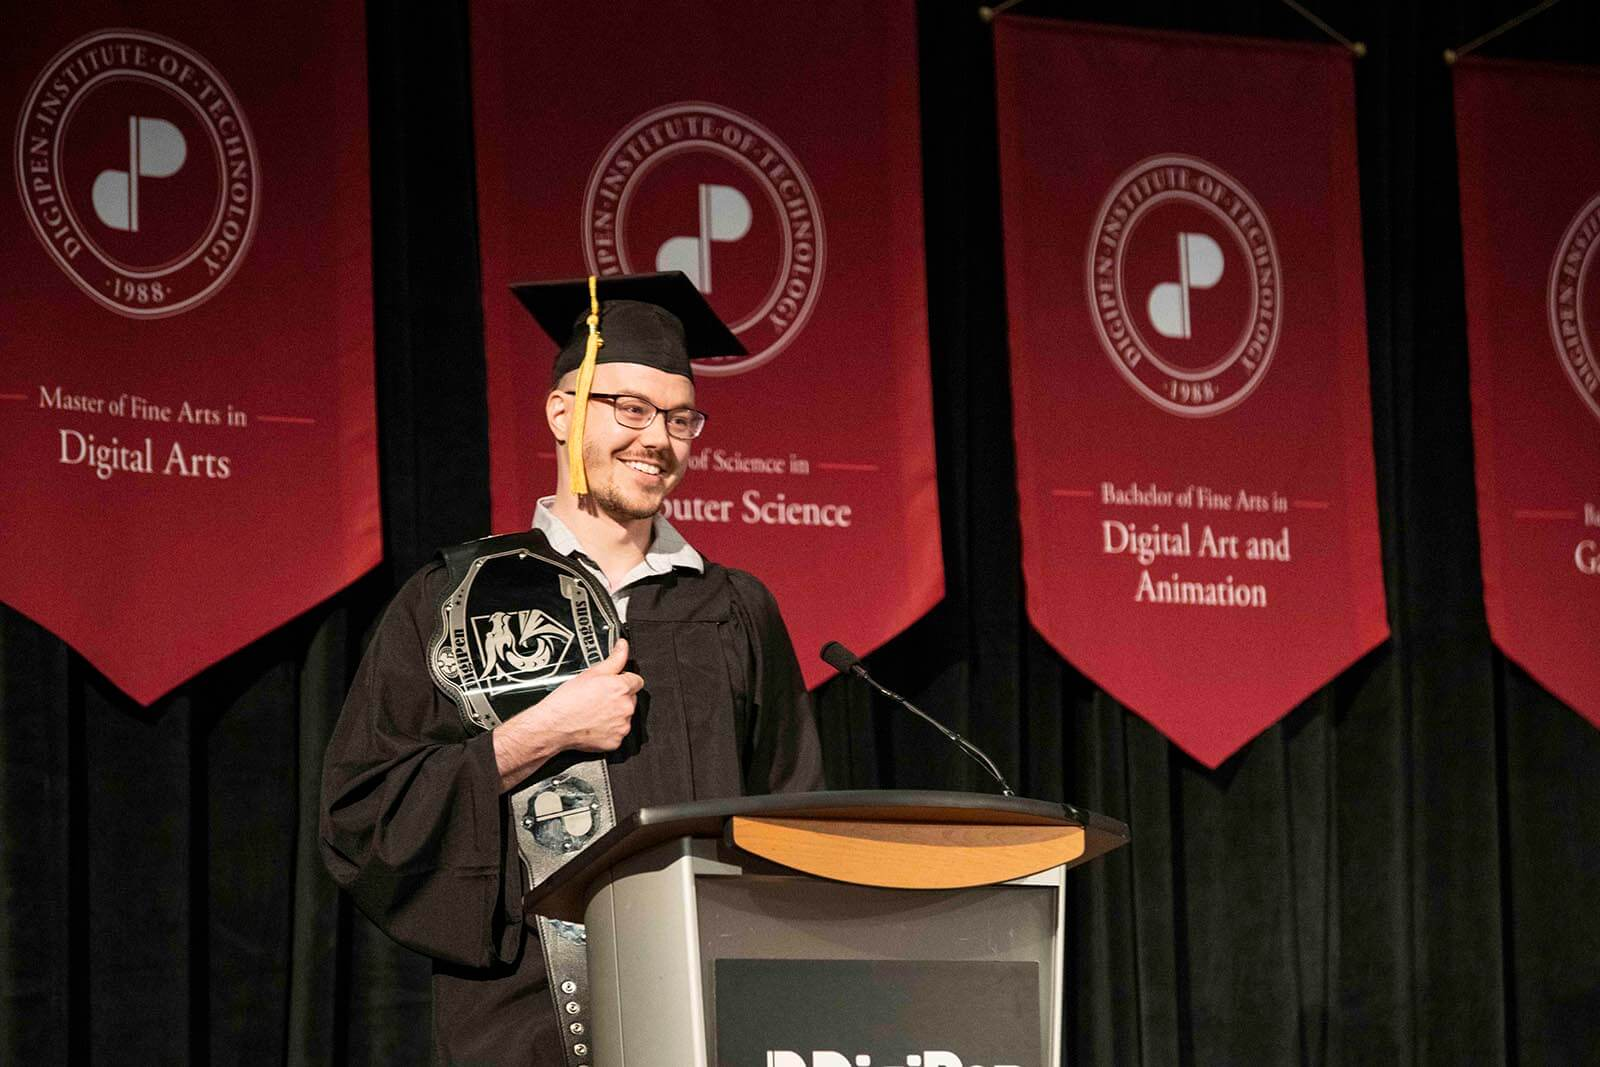 Benjamin Albertson-Gass stands at a podium in graduate garb holding a wrestling-style belt bearing the DigiPen logo.